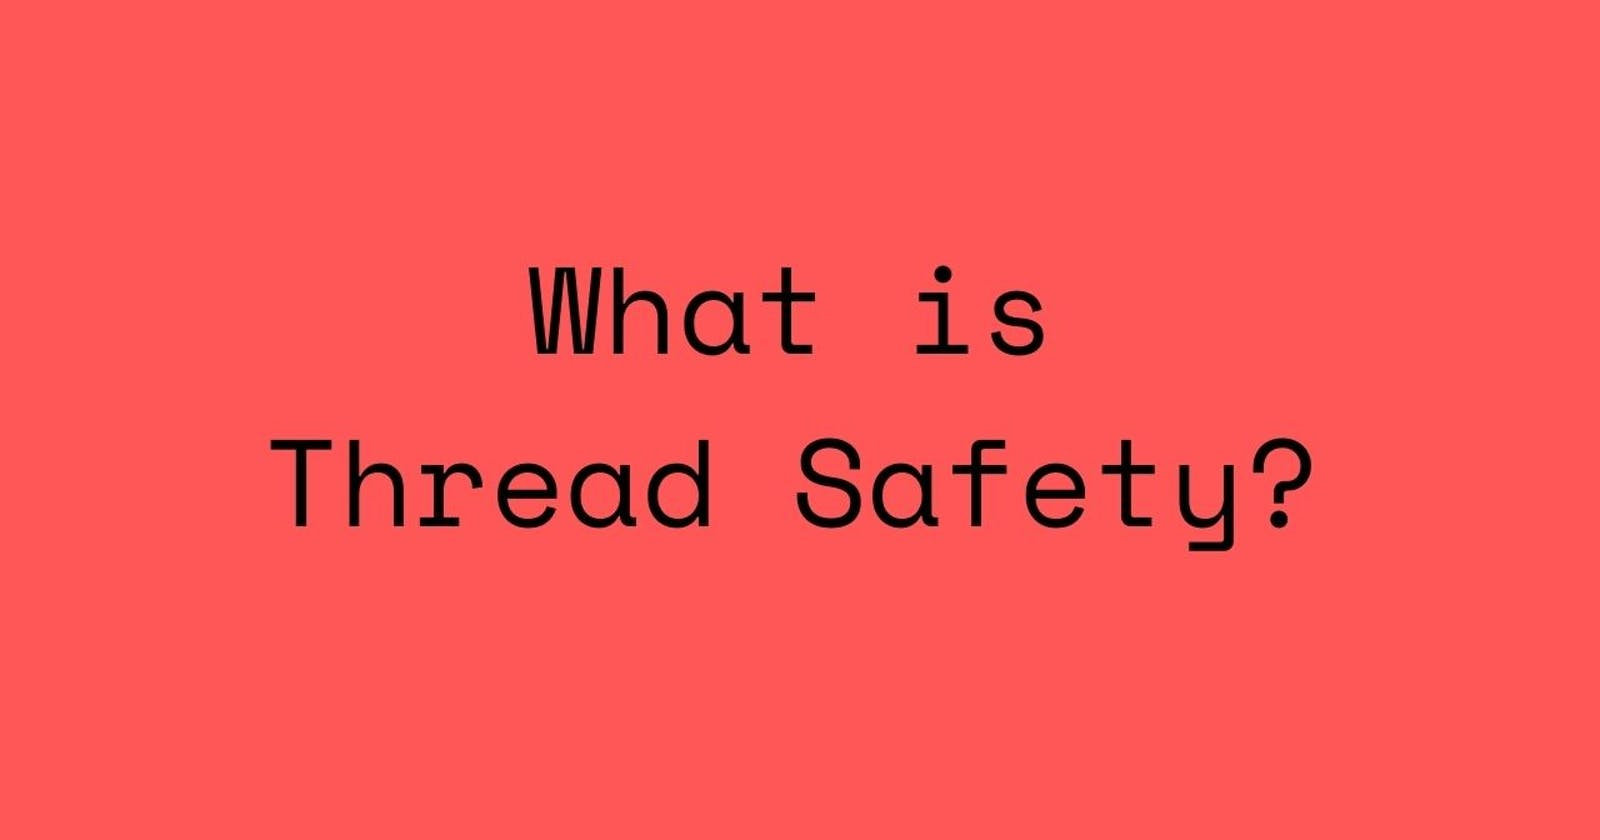 What is Thread-Safe? 🤔